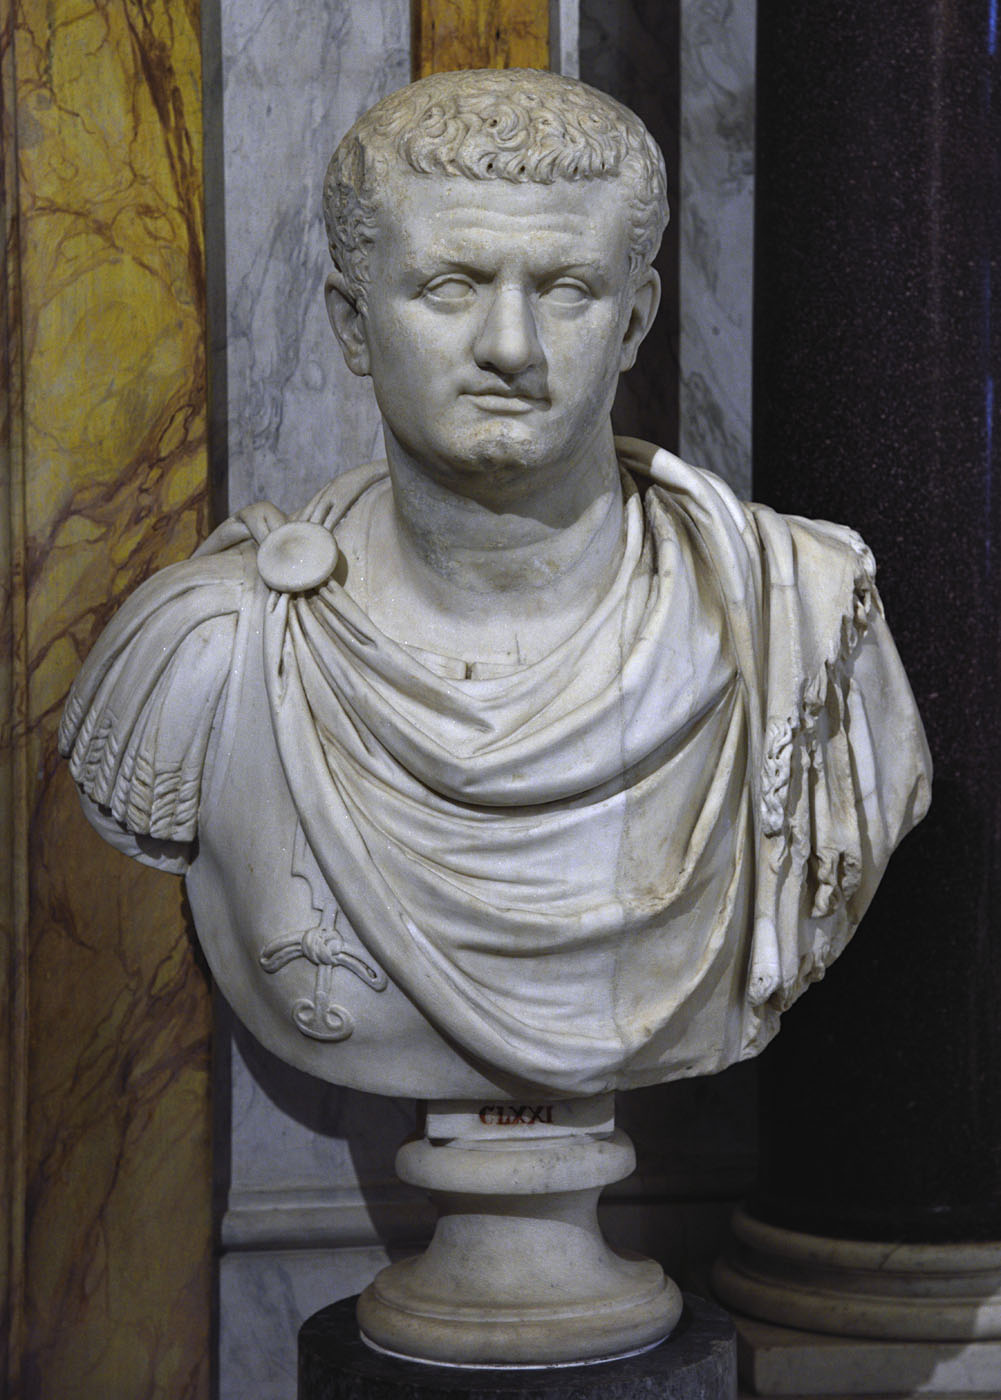 titus flavius vespasian Titus was the son of vespasian, a rising official in the imperial service, and his wife, domitilla titus was handsome, talented, and athletically skilled, and he enjoyed a favored position in the court of the emperor claudius i (41-54.